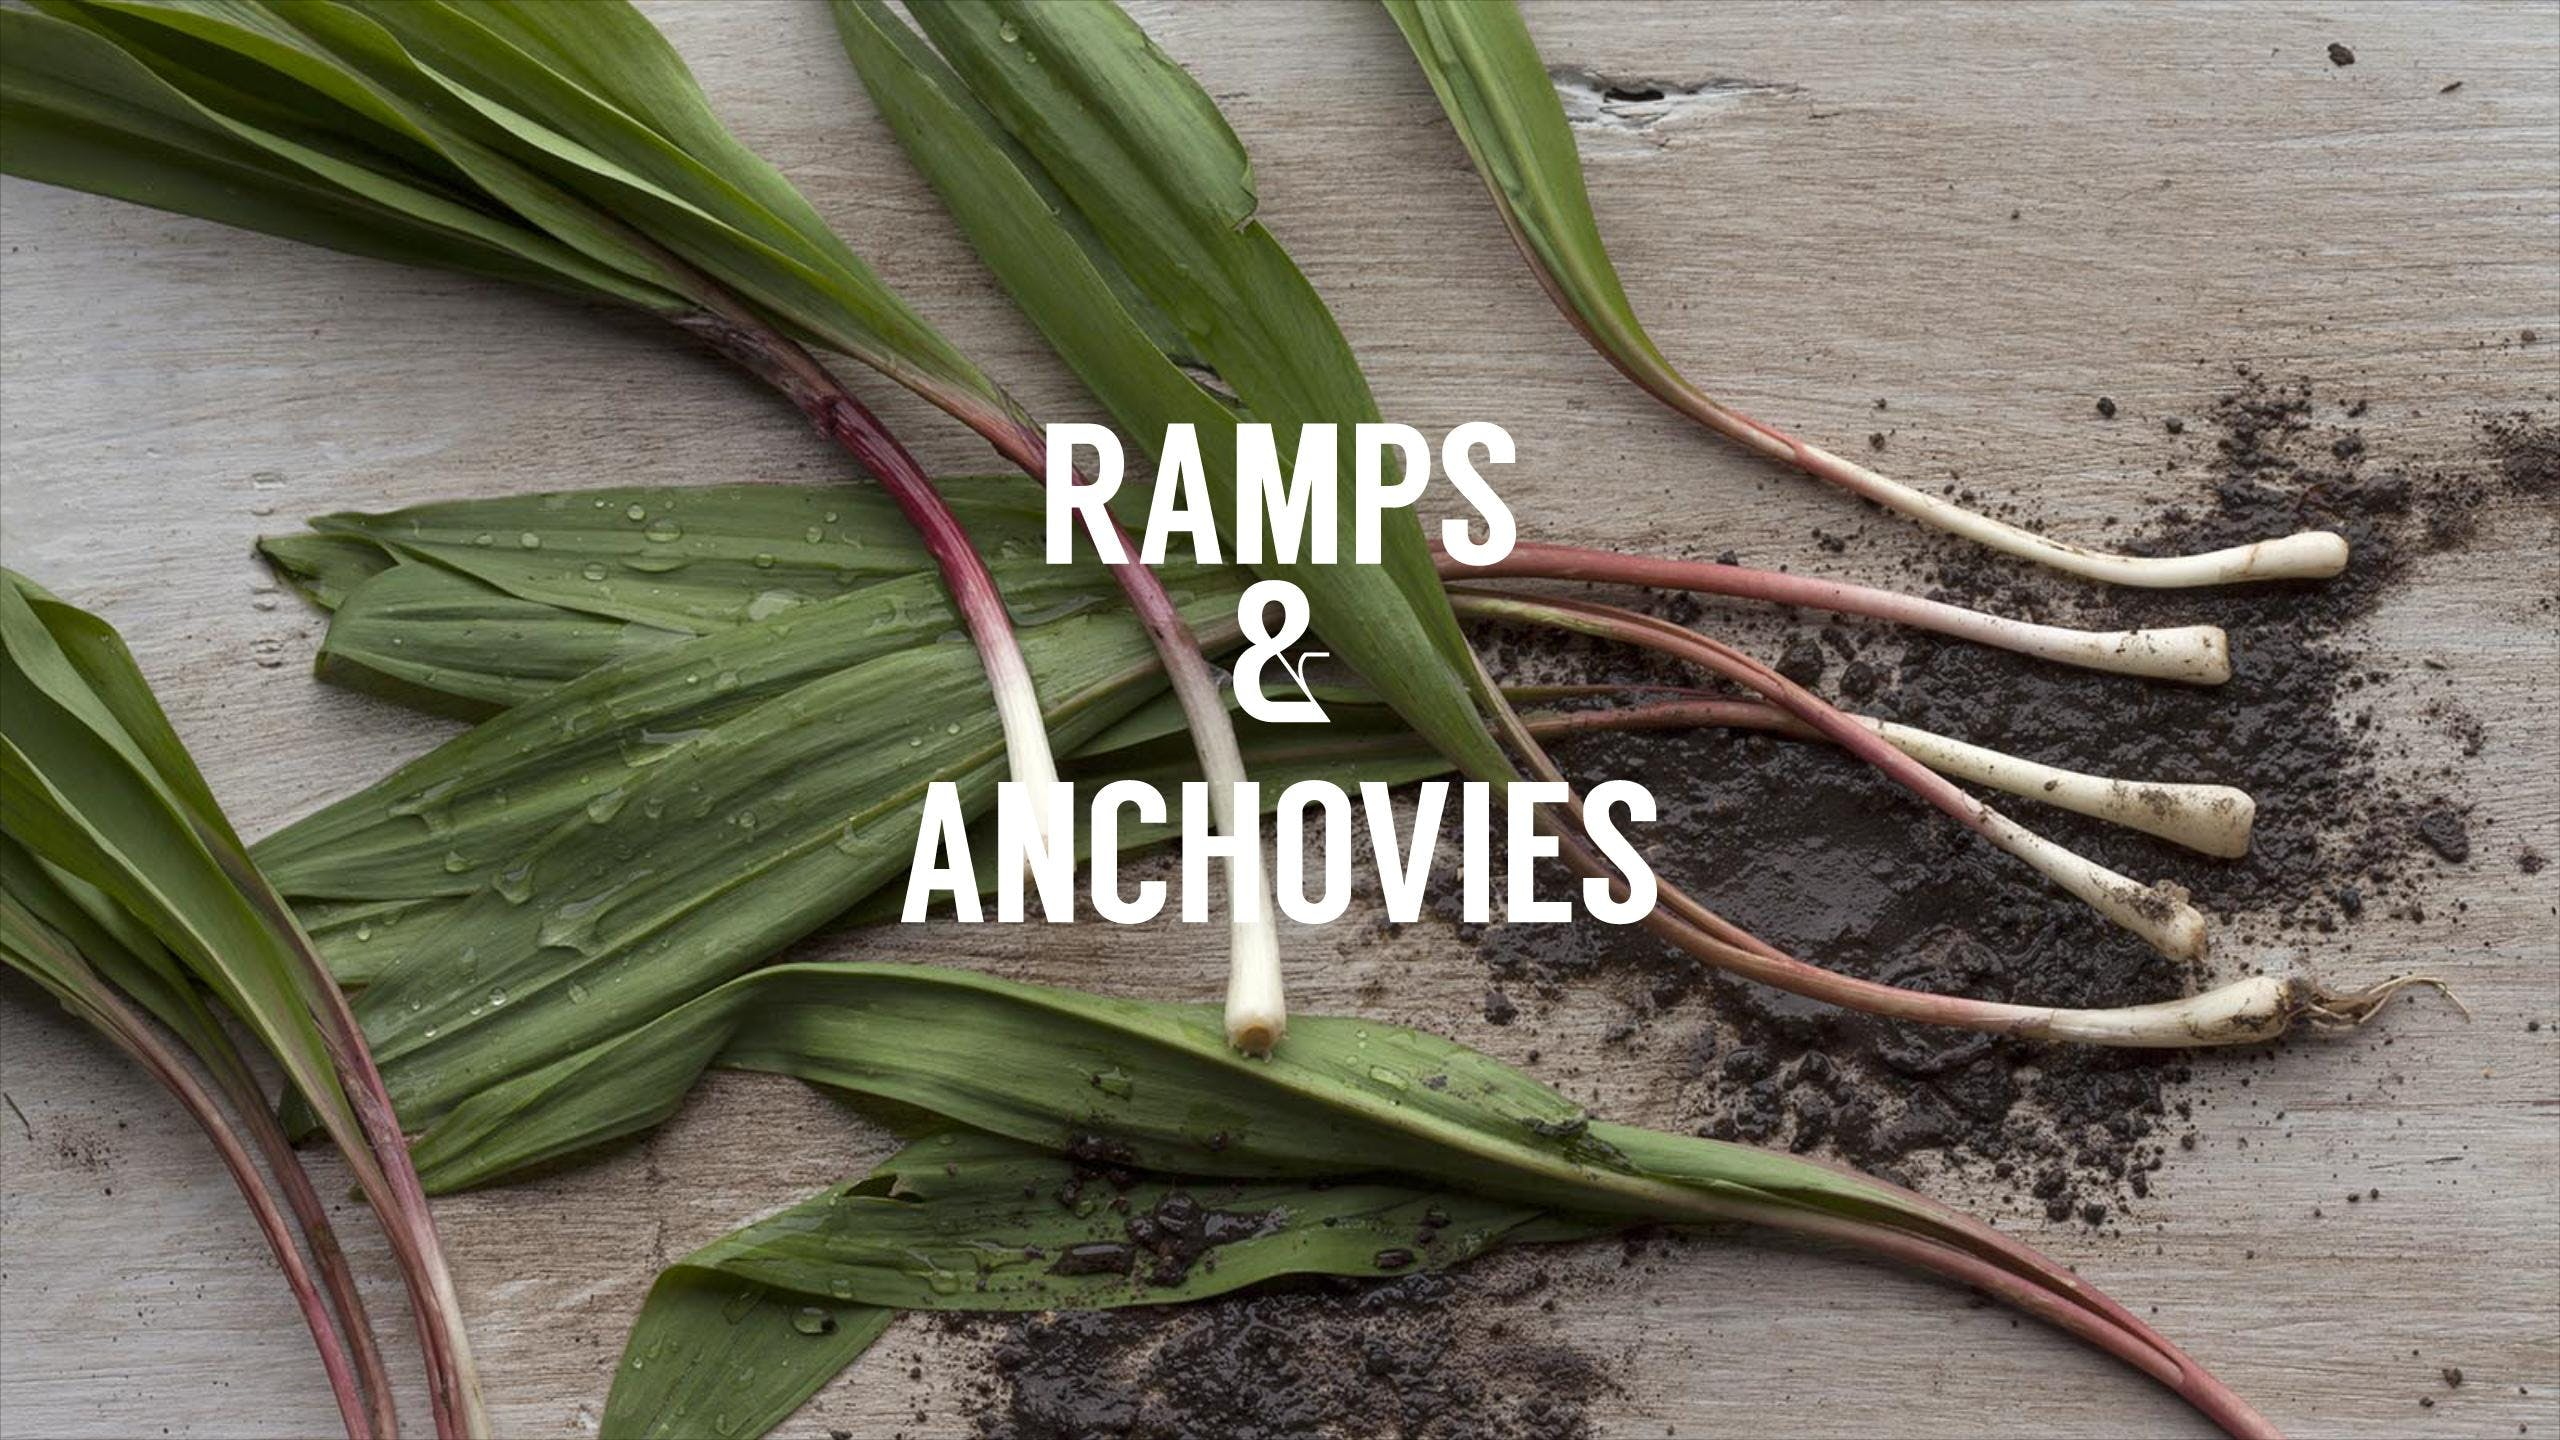 Ramps & Anchovies